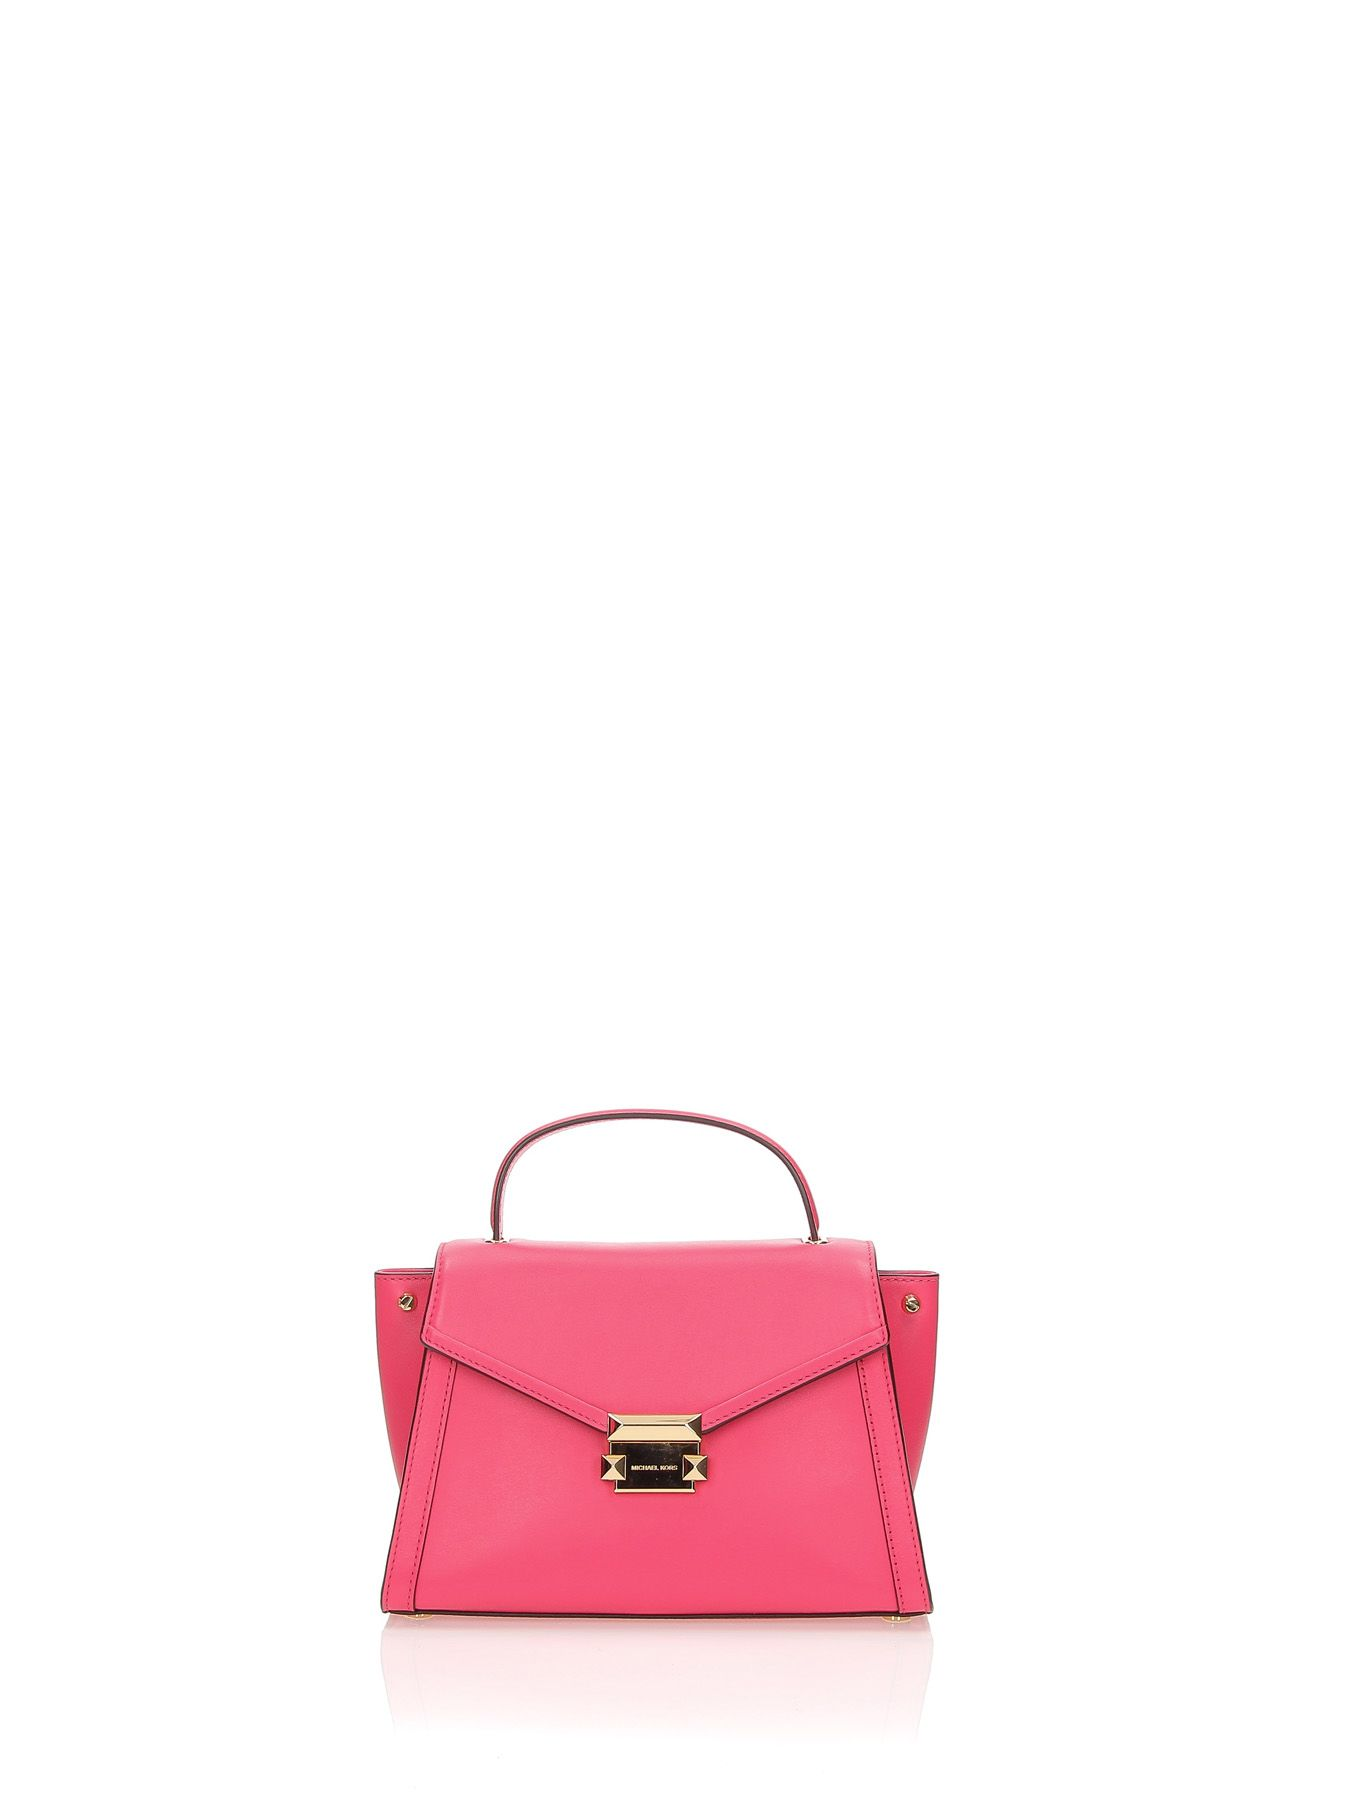 M Group Md Th Satchel in Pink